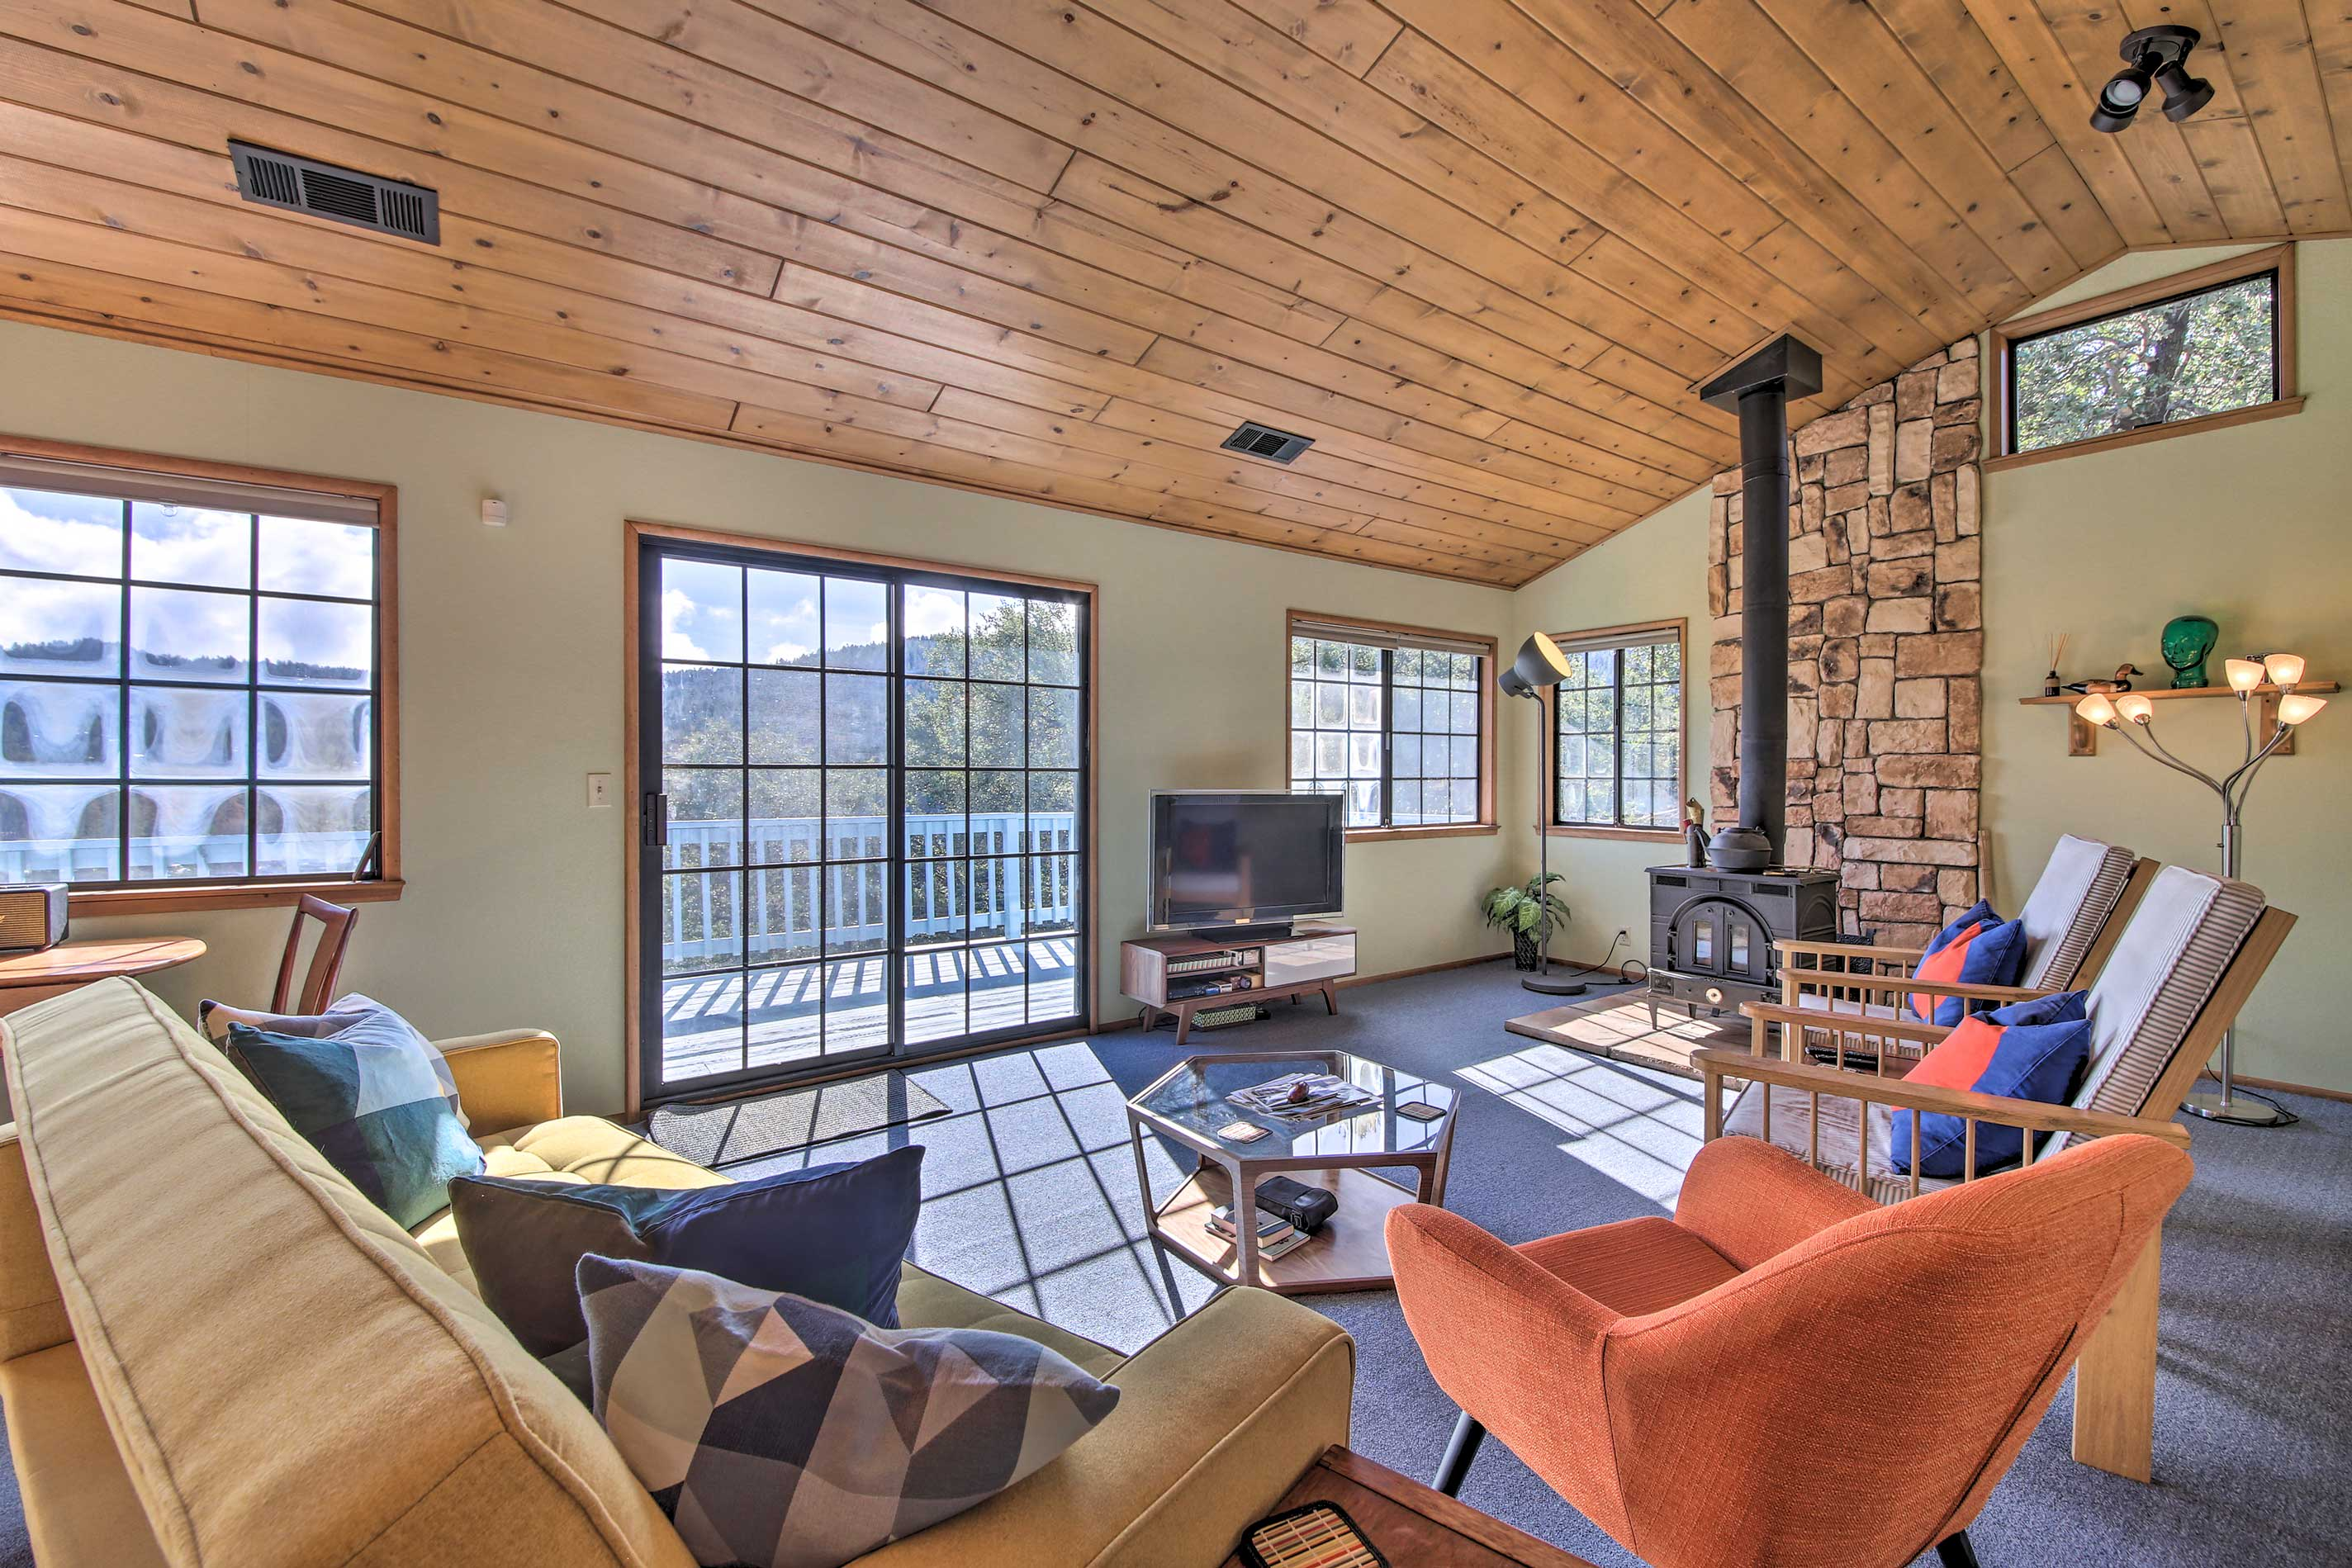 This 3-bed, 2.5 bath Crestline vacation rental welcomes you and your loved ones.